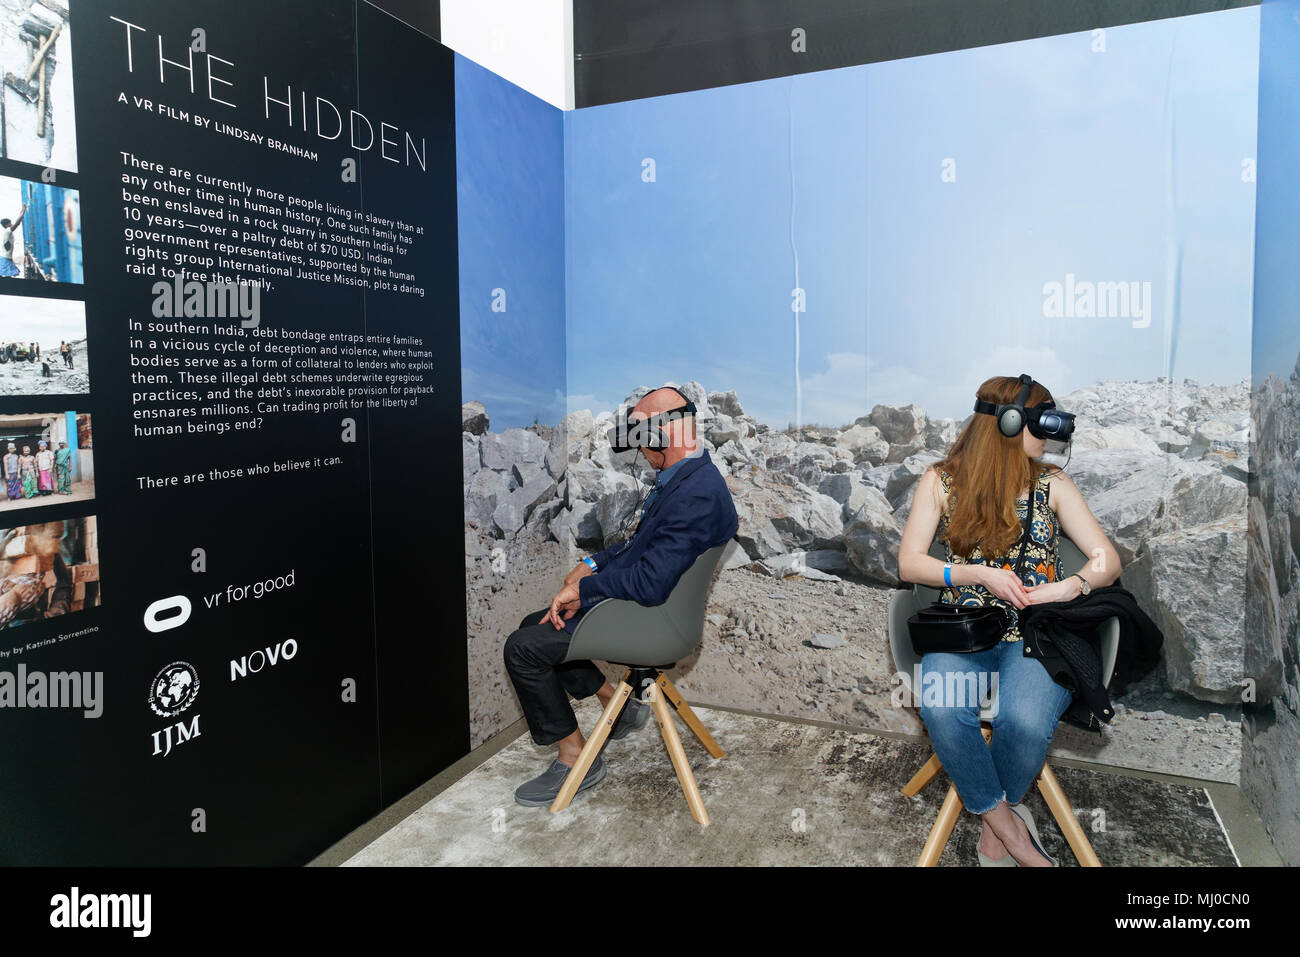 "Visitors to the Tribeca Film Festival Virtual Arcade watching ""The Hidden,"" which tells the story of a family enslaved for 10 years in India. - Stock Image"